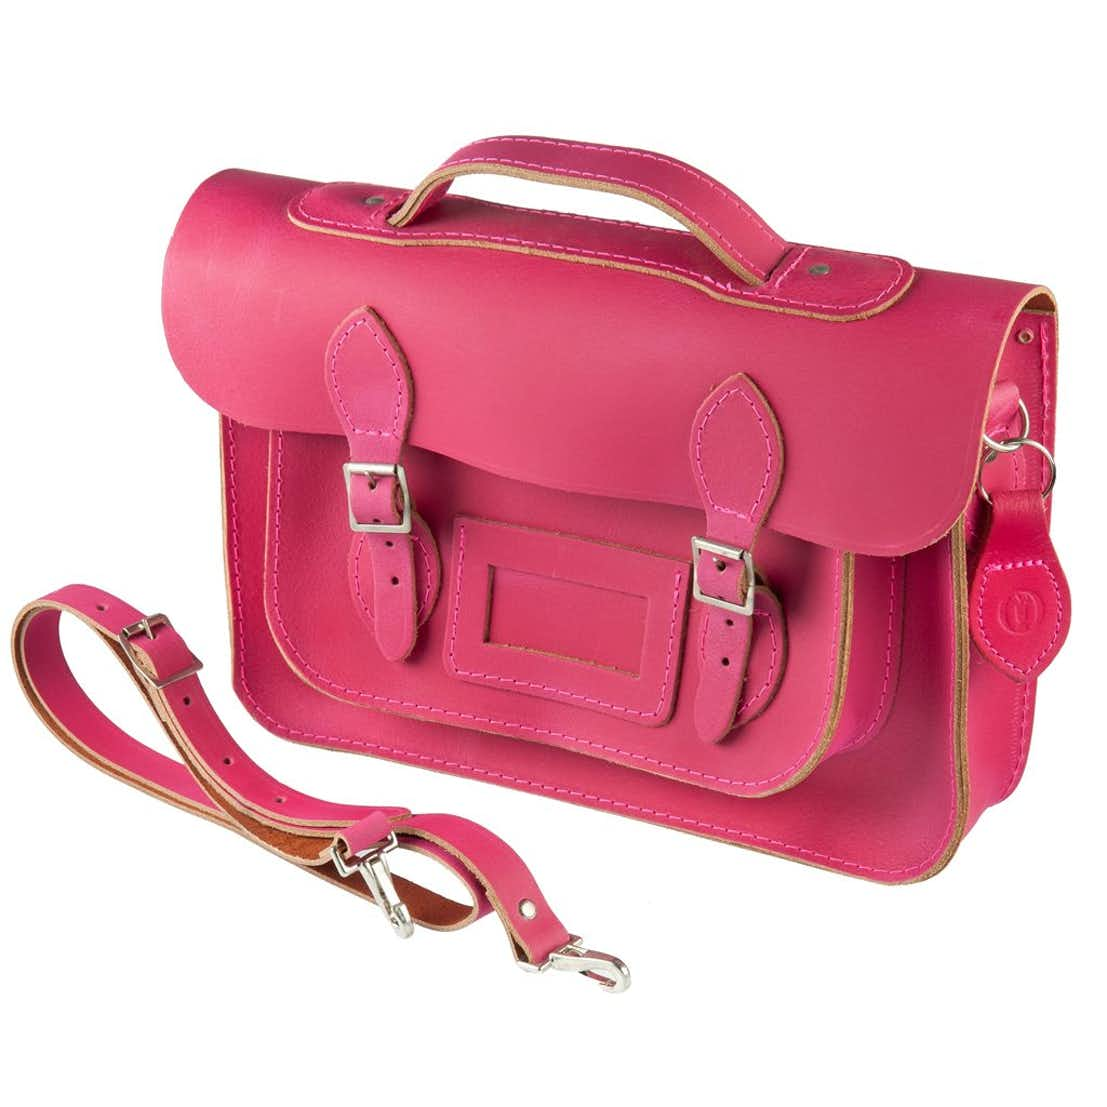 The Open Satchel - Fuchsia